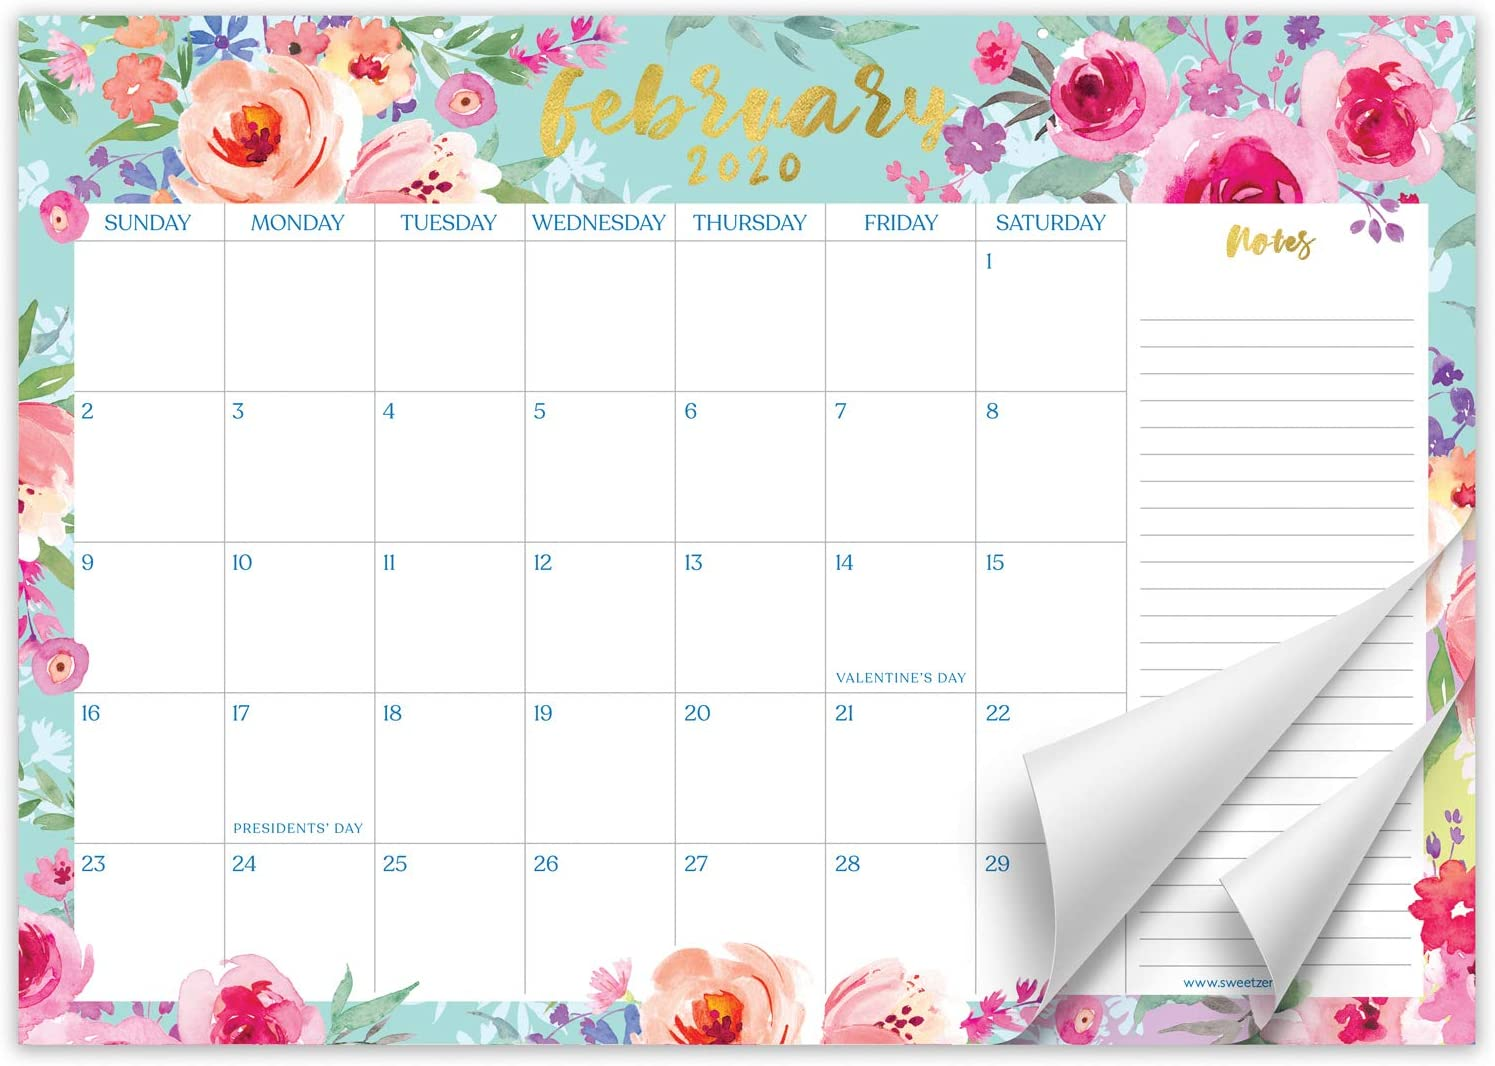 Sweetzer & Orange 2020 Calendar. 16 Month Desk Calendar 2020-April 2021 – Floral Design Monthly Planner, Daily Desk Pad Calendars for Home or Office Organization. 12 x 17 Desktop Calendar or Wall